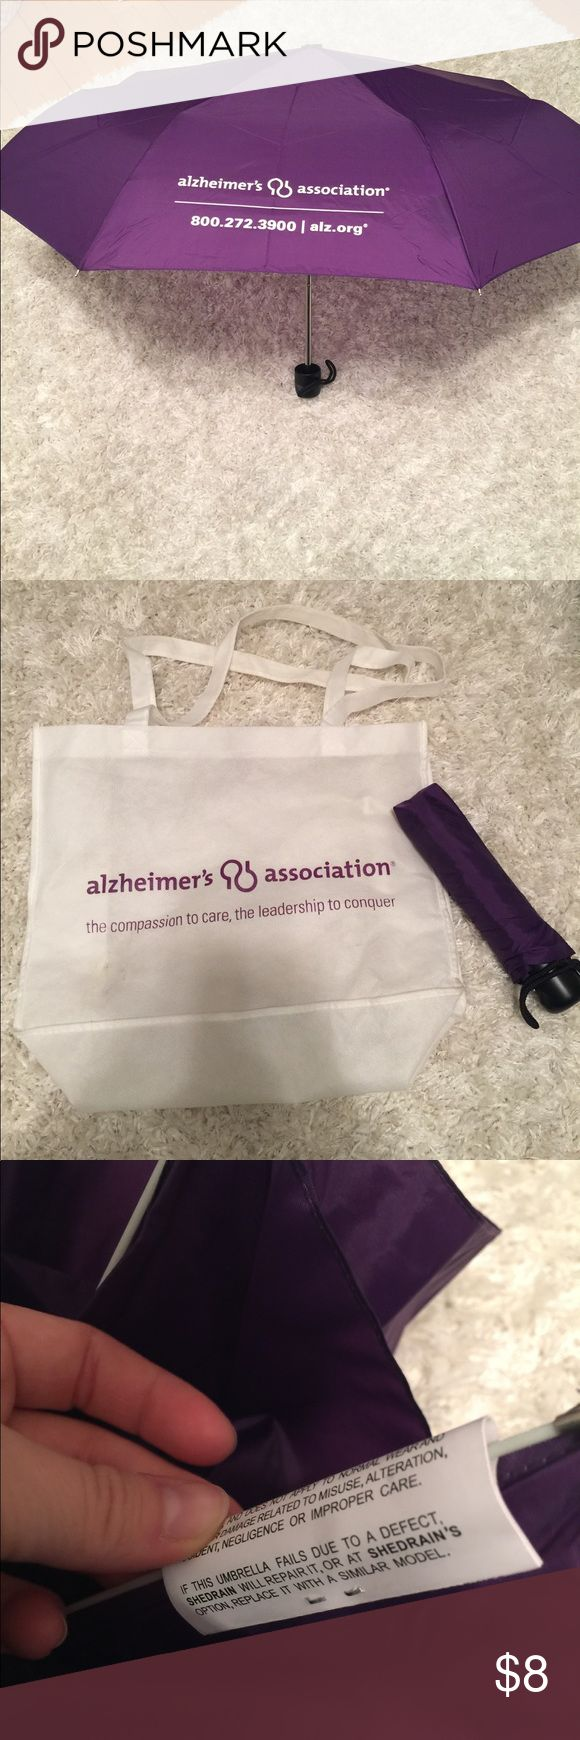 Alzheimer's umbrella 🌂 and tote Umbrella has never been used and has a warranty on it. The tote is also included and has a tiny stain (as seen in photo) that I'm sure will come out with cleaning. :) alzheimers assoc. Accessories Umbrellas